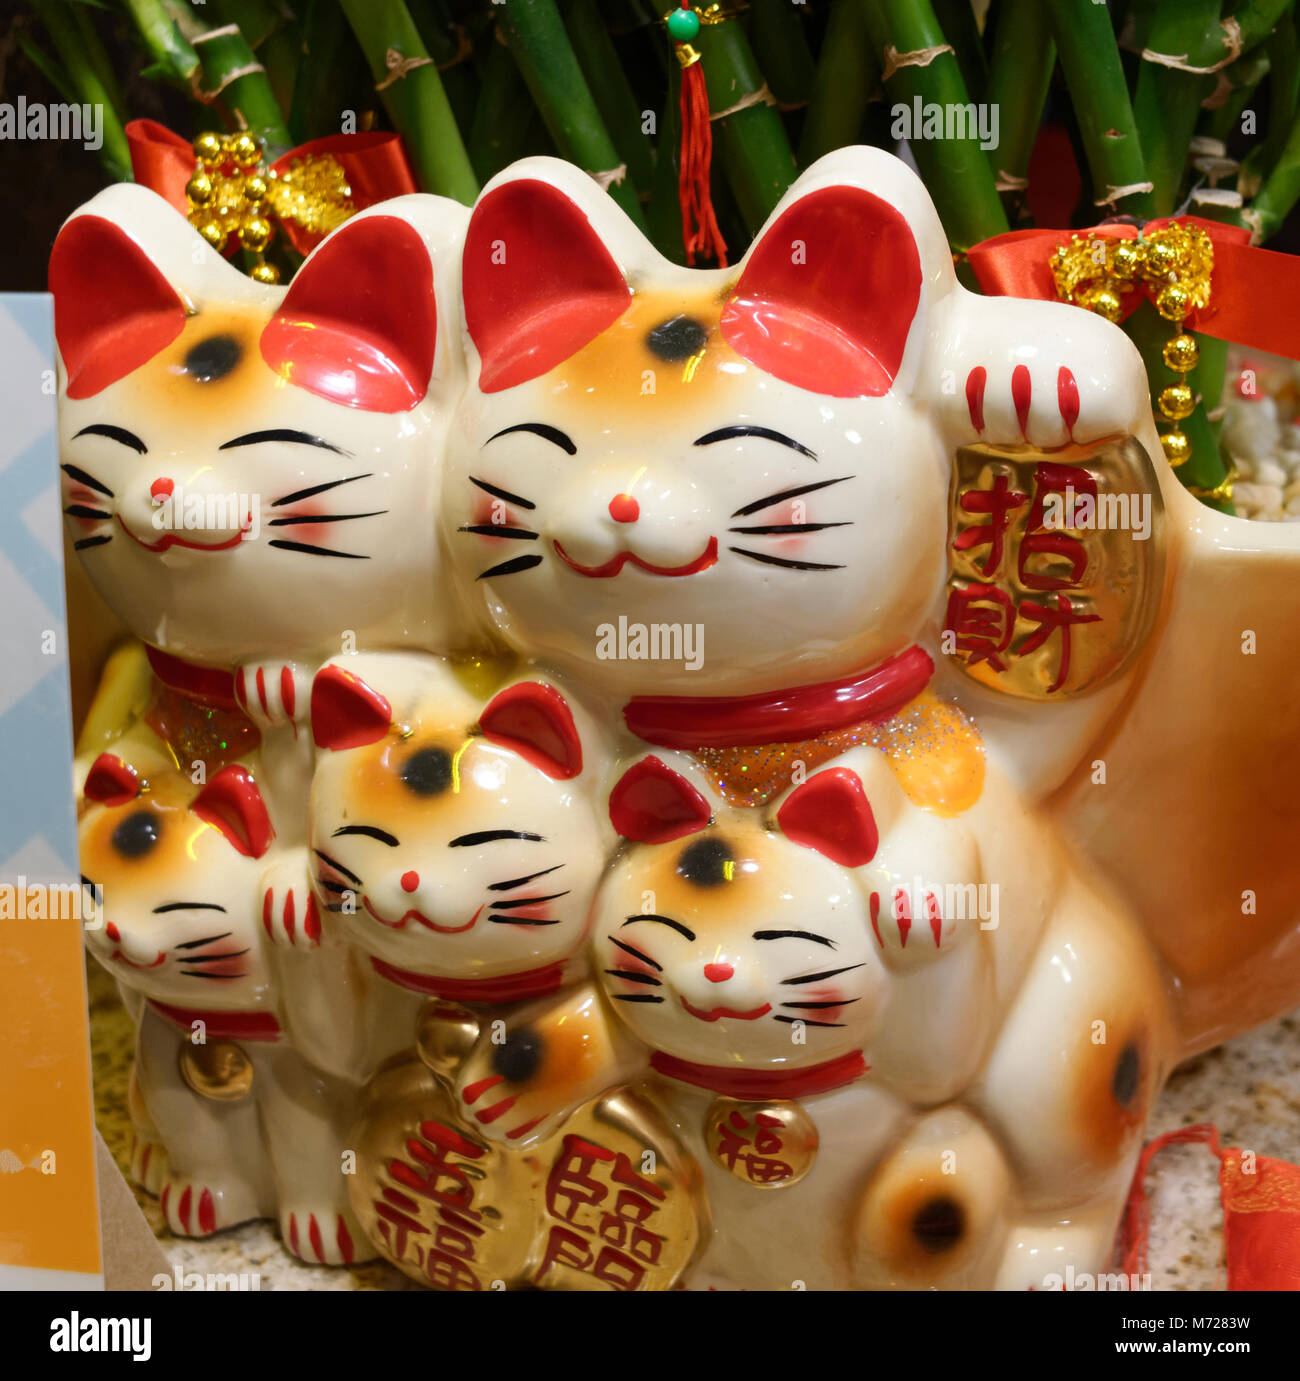 Maneki Neko lucky fortune cats on display at a restaurant - Stock Image